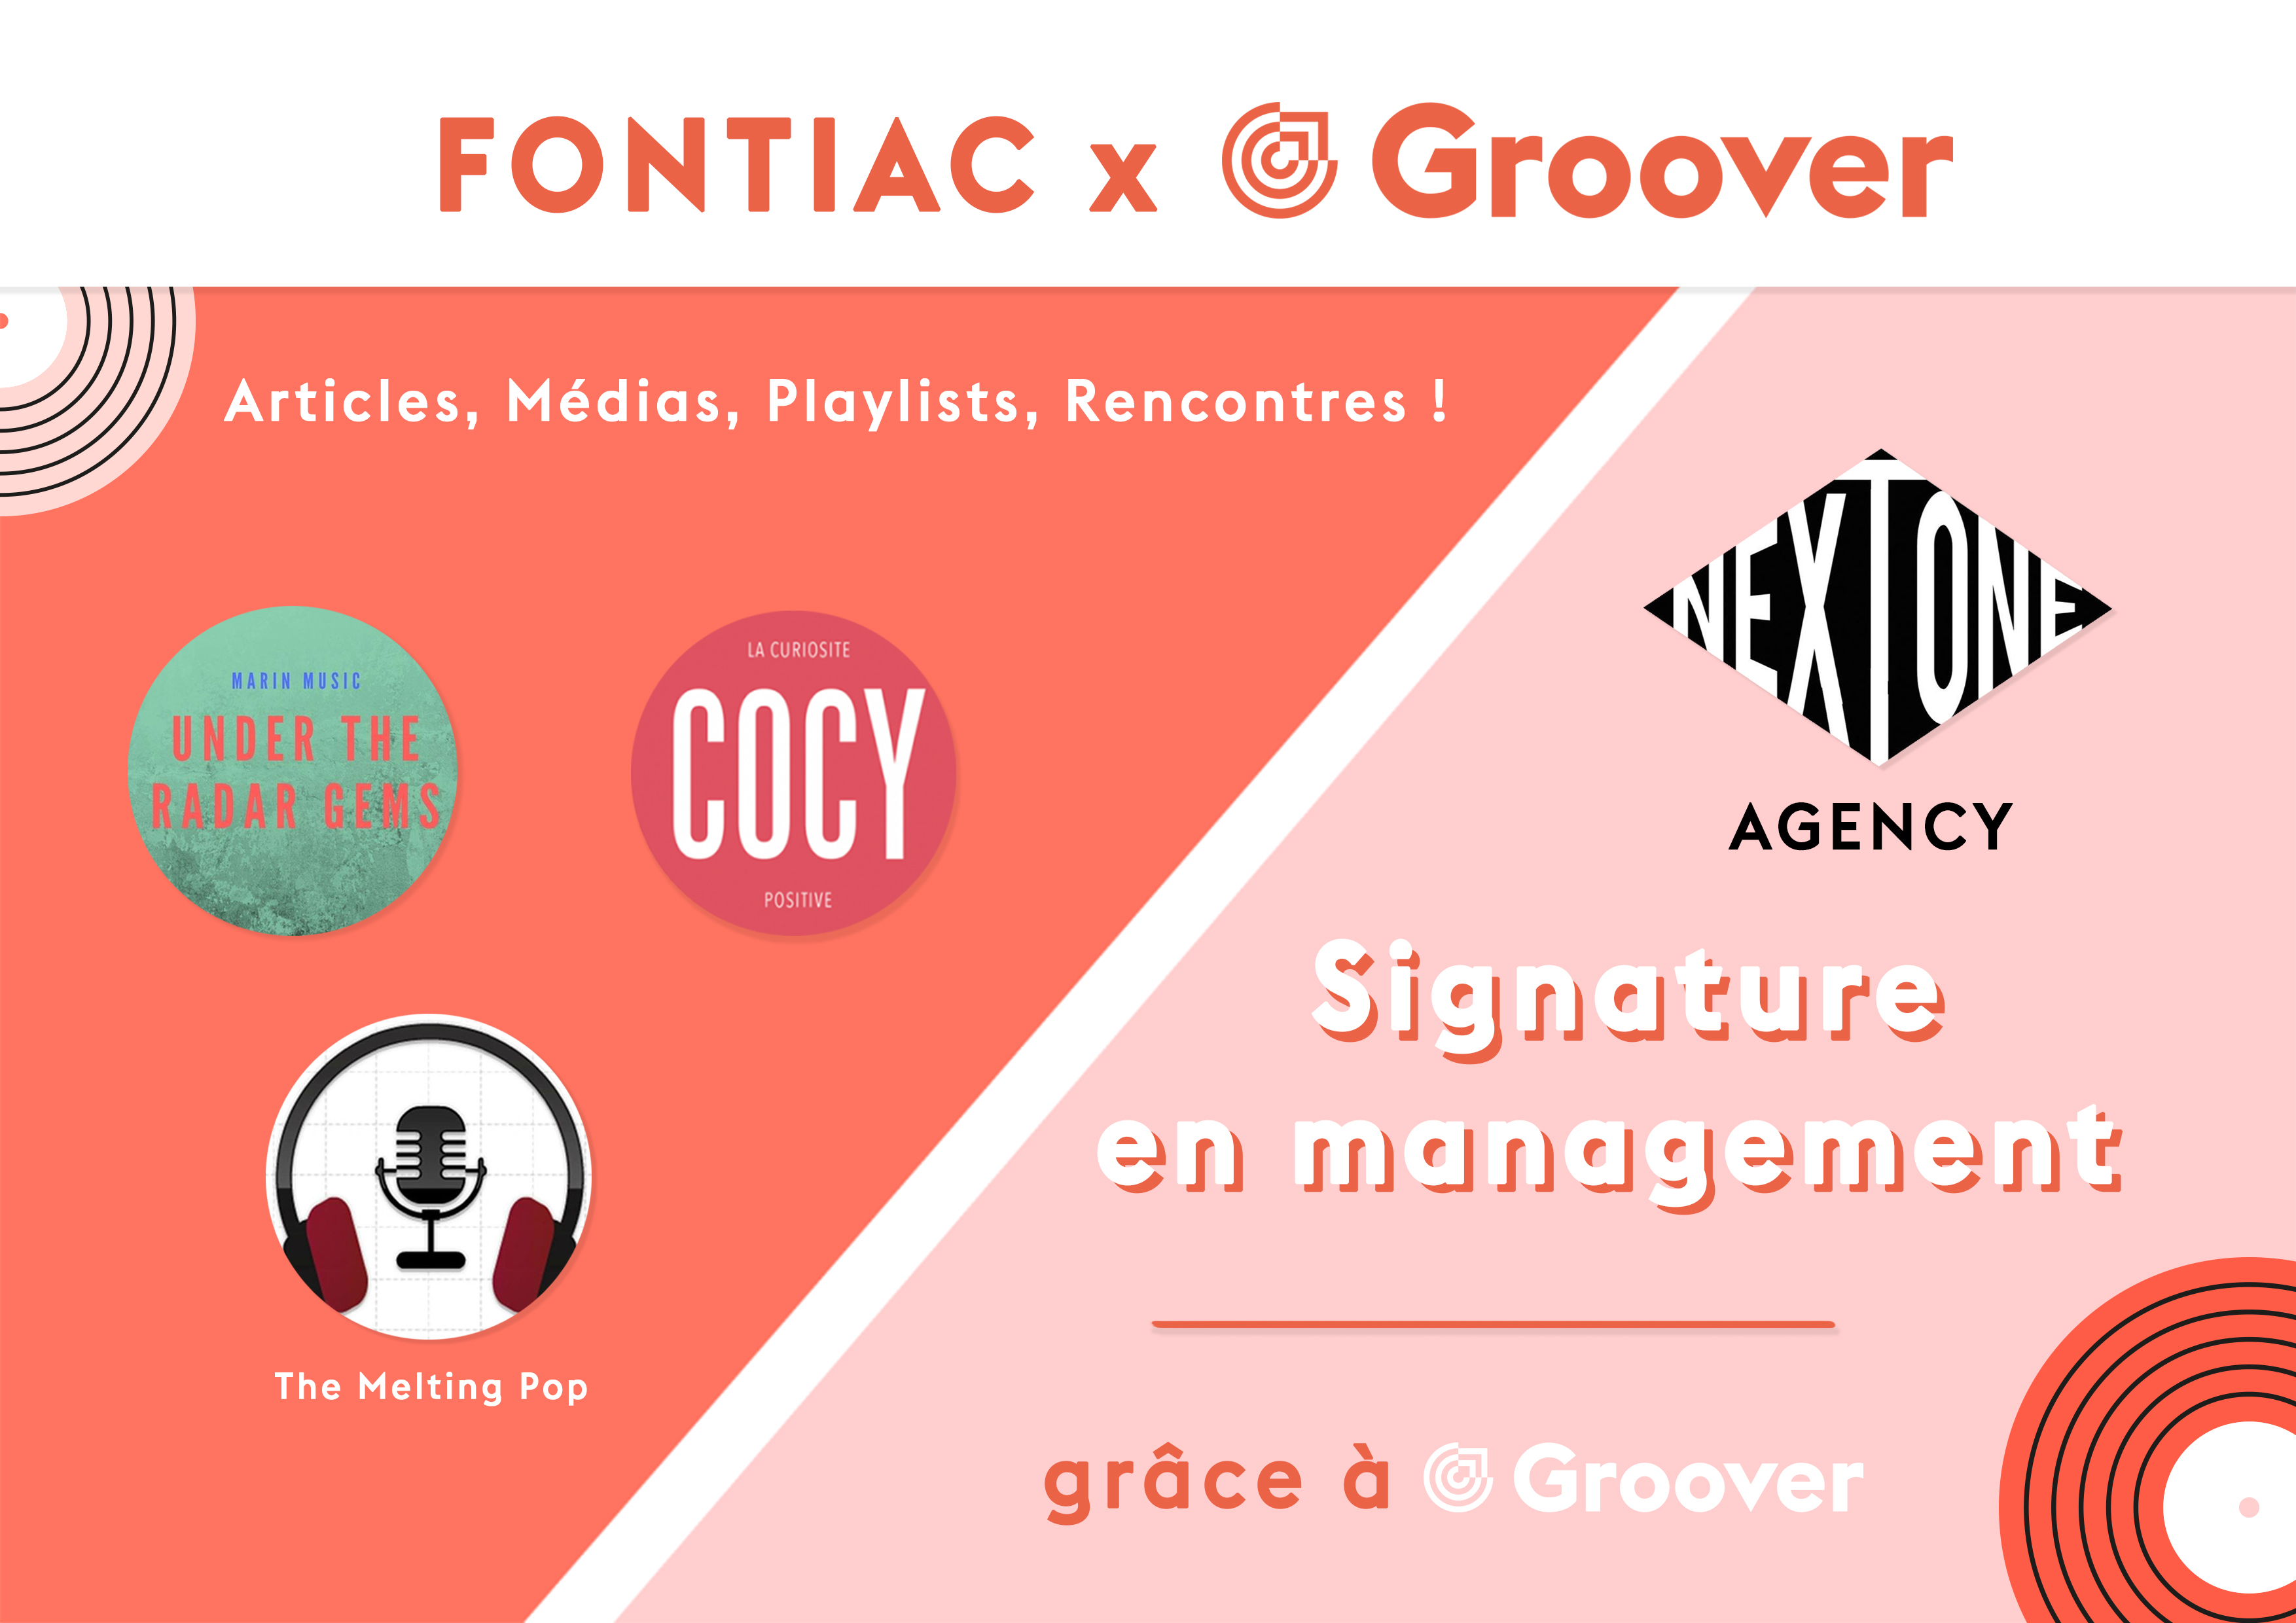 Résultats Fontiac sur Groover, Under the radar gems, the melting pop, cocy, nextone agency signature en management